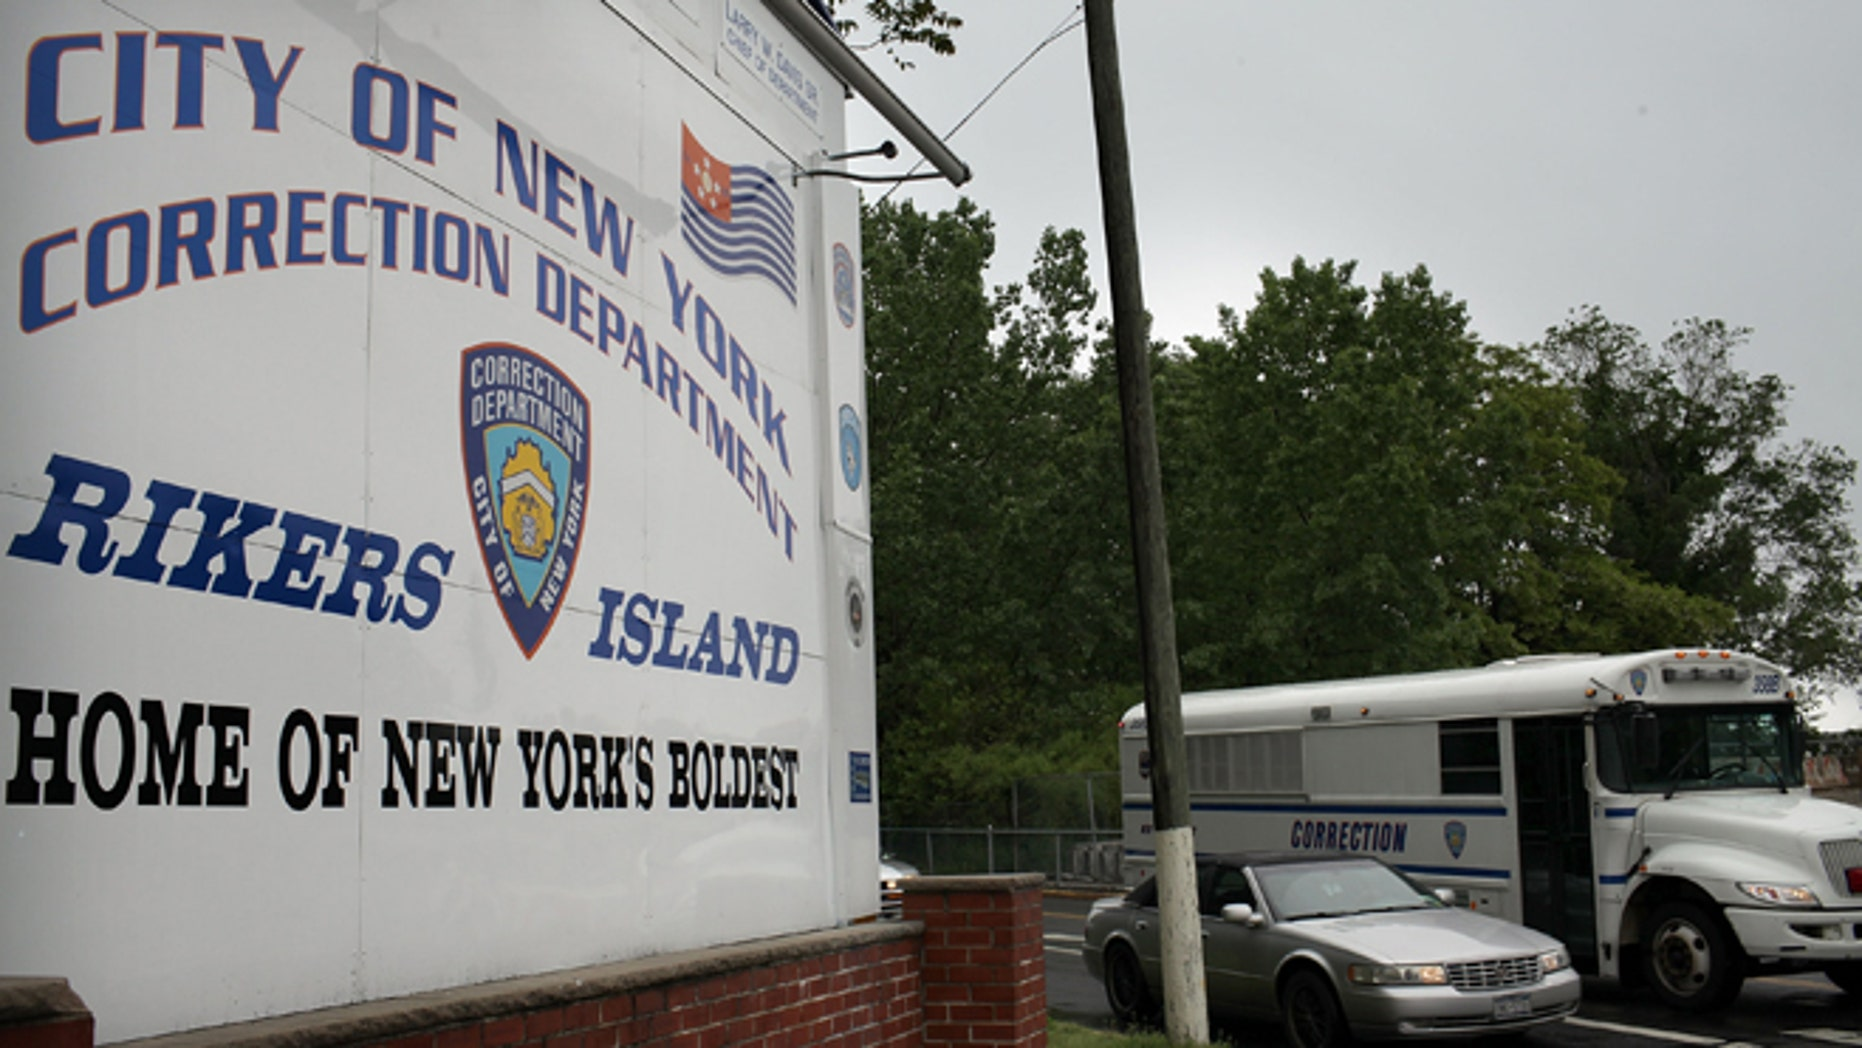 NEW YORK, NY - MAY 17:  A view of the entrance to the Rikers Island prison complex where Dominique Strauss-Kahn, head of the International Monetary Fund (IMF), is being held while awaiting another bail hearing on May 17, 2011 in New York City. Strauss-Kahn was arrested on May 14 on sexual assault charges stemming for an incident with a maid at a Manhattan hotel. Strauss-Kahn was expected to announce a presidential bid for France in the coming weeks. Strauss-Kahn was transferred to Rikers on Monday after a Manhattan Criminal Court judge refused to grant him bail.  (Photo by Spencer Platt/Getty Images)